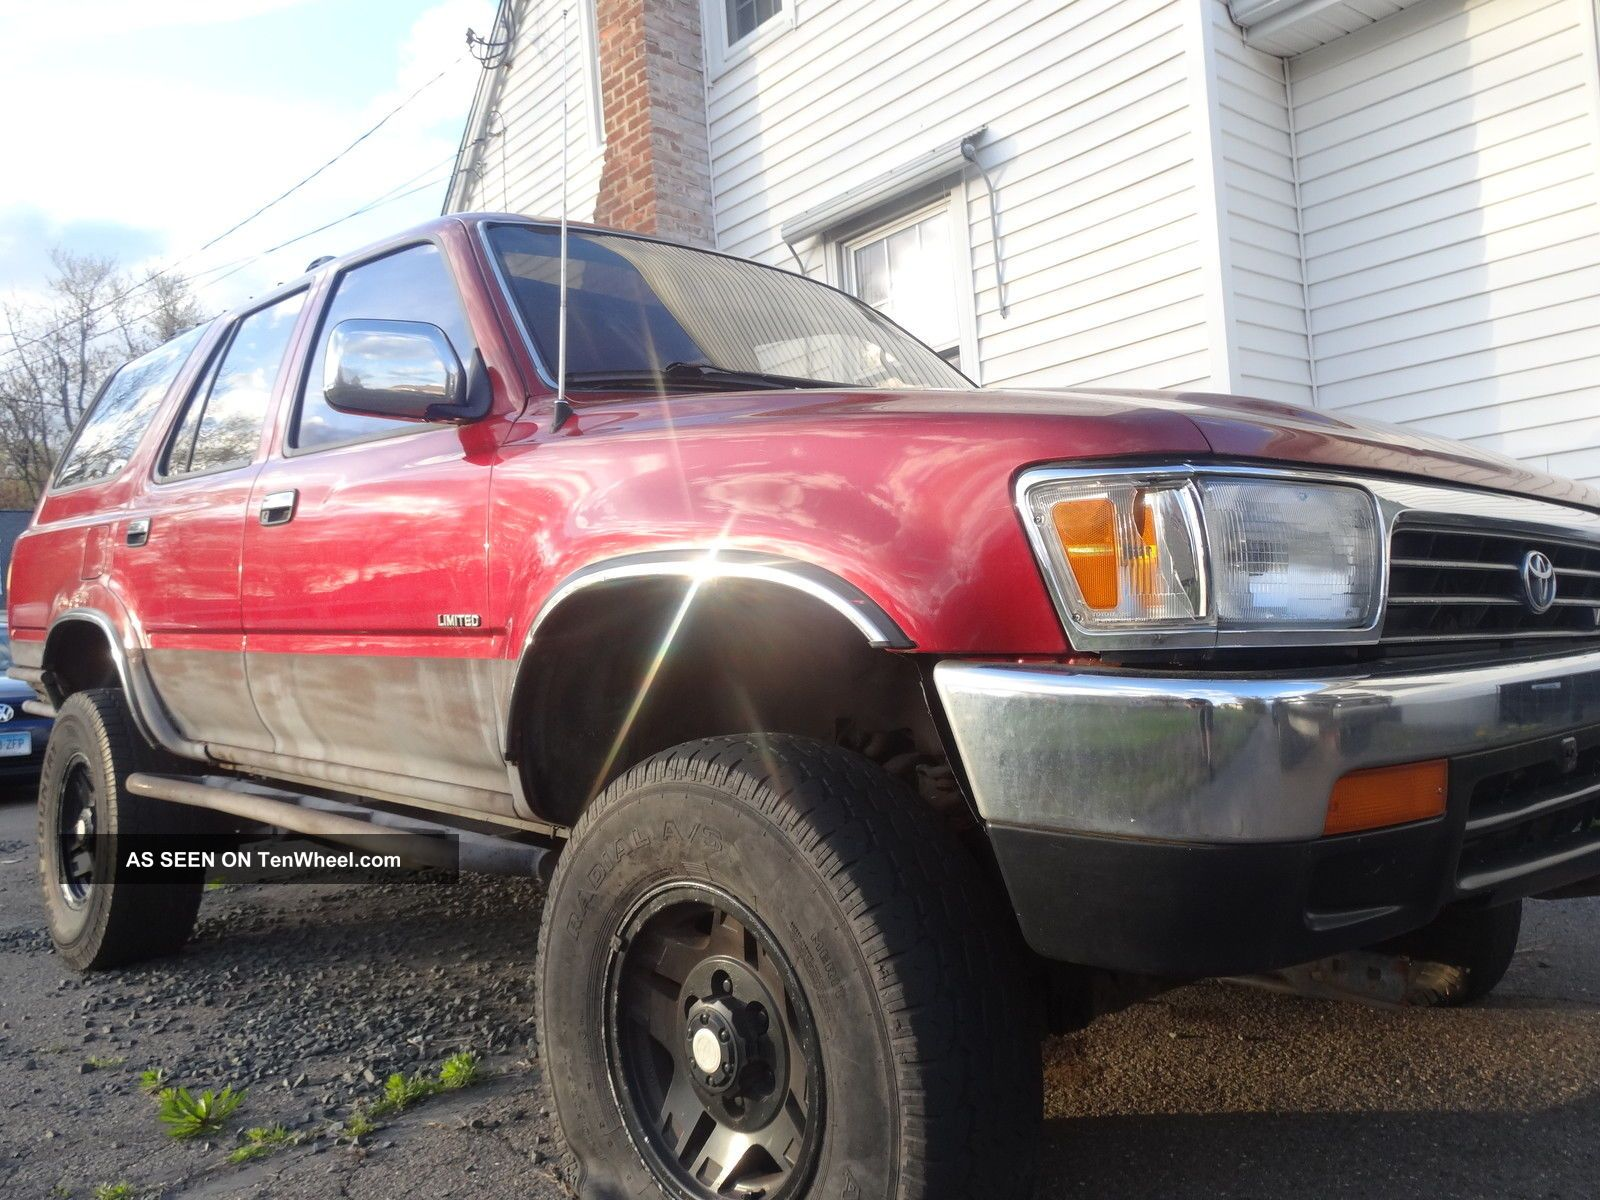 1995 Toyota 4runner 4x4 Limited Lifted Mud / Woods / Trail Truck Sr5 Title 4Runner photo